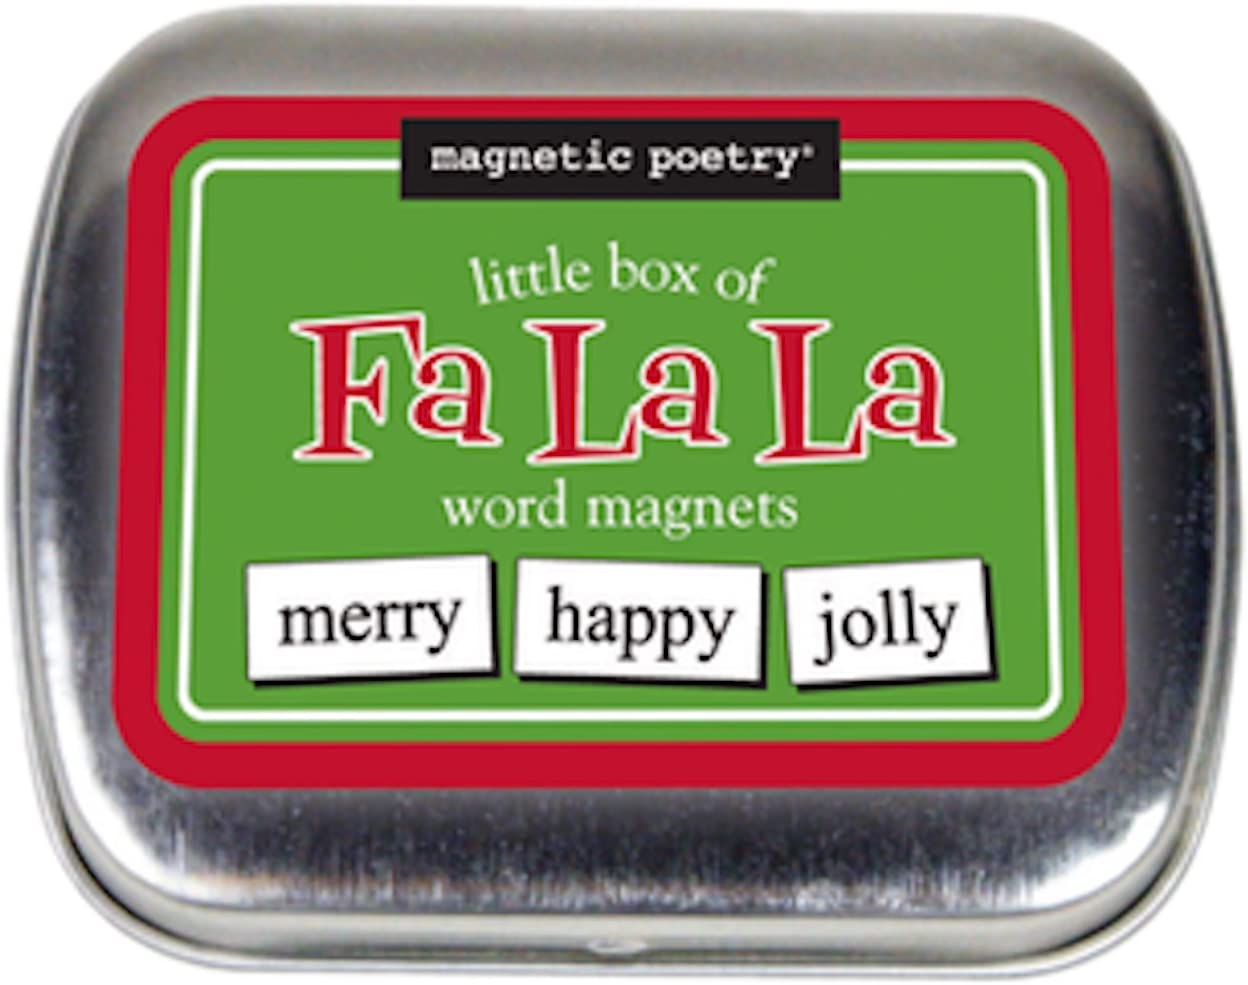 Magnetic Poetry - Little Box of Falala Christmas Kit - Words for Refrigerator - Write Poems and Letters on The Fridge - Made in The USA